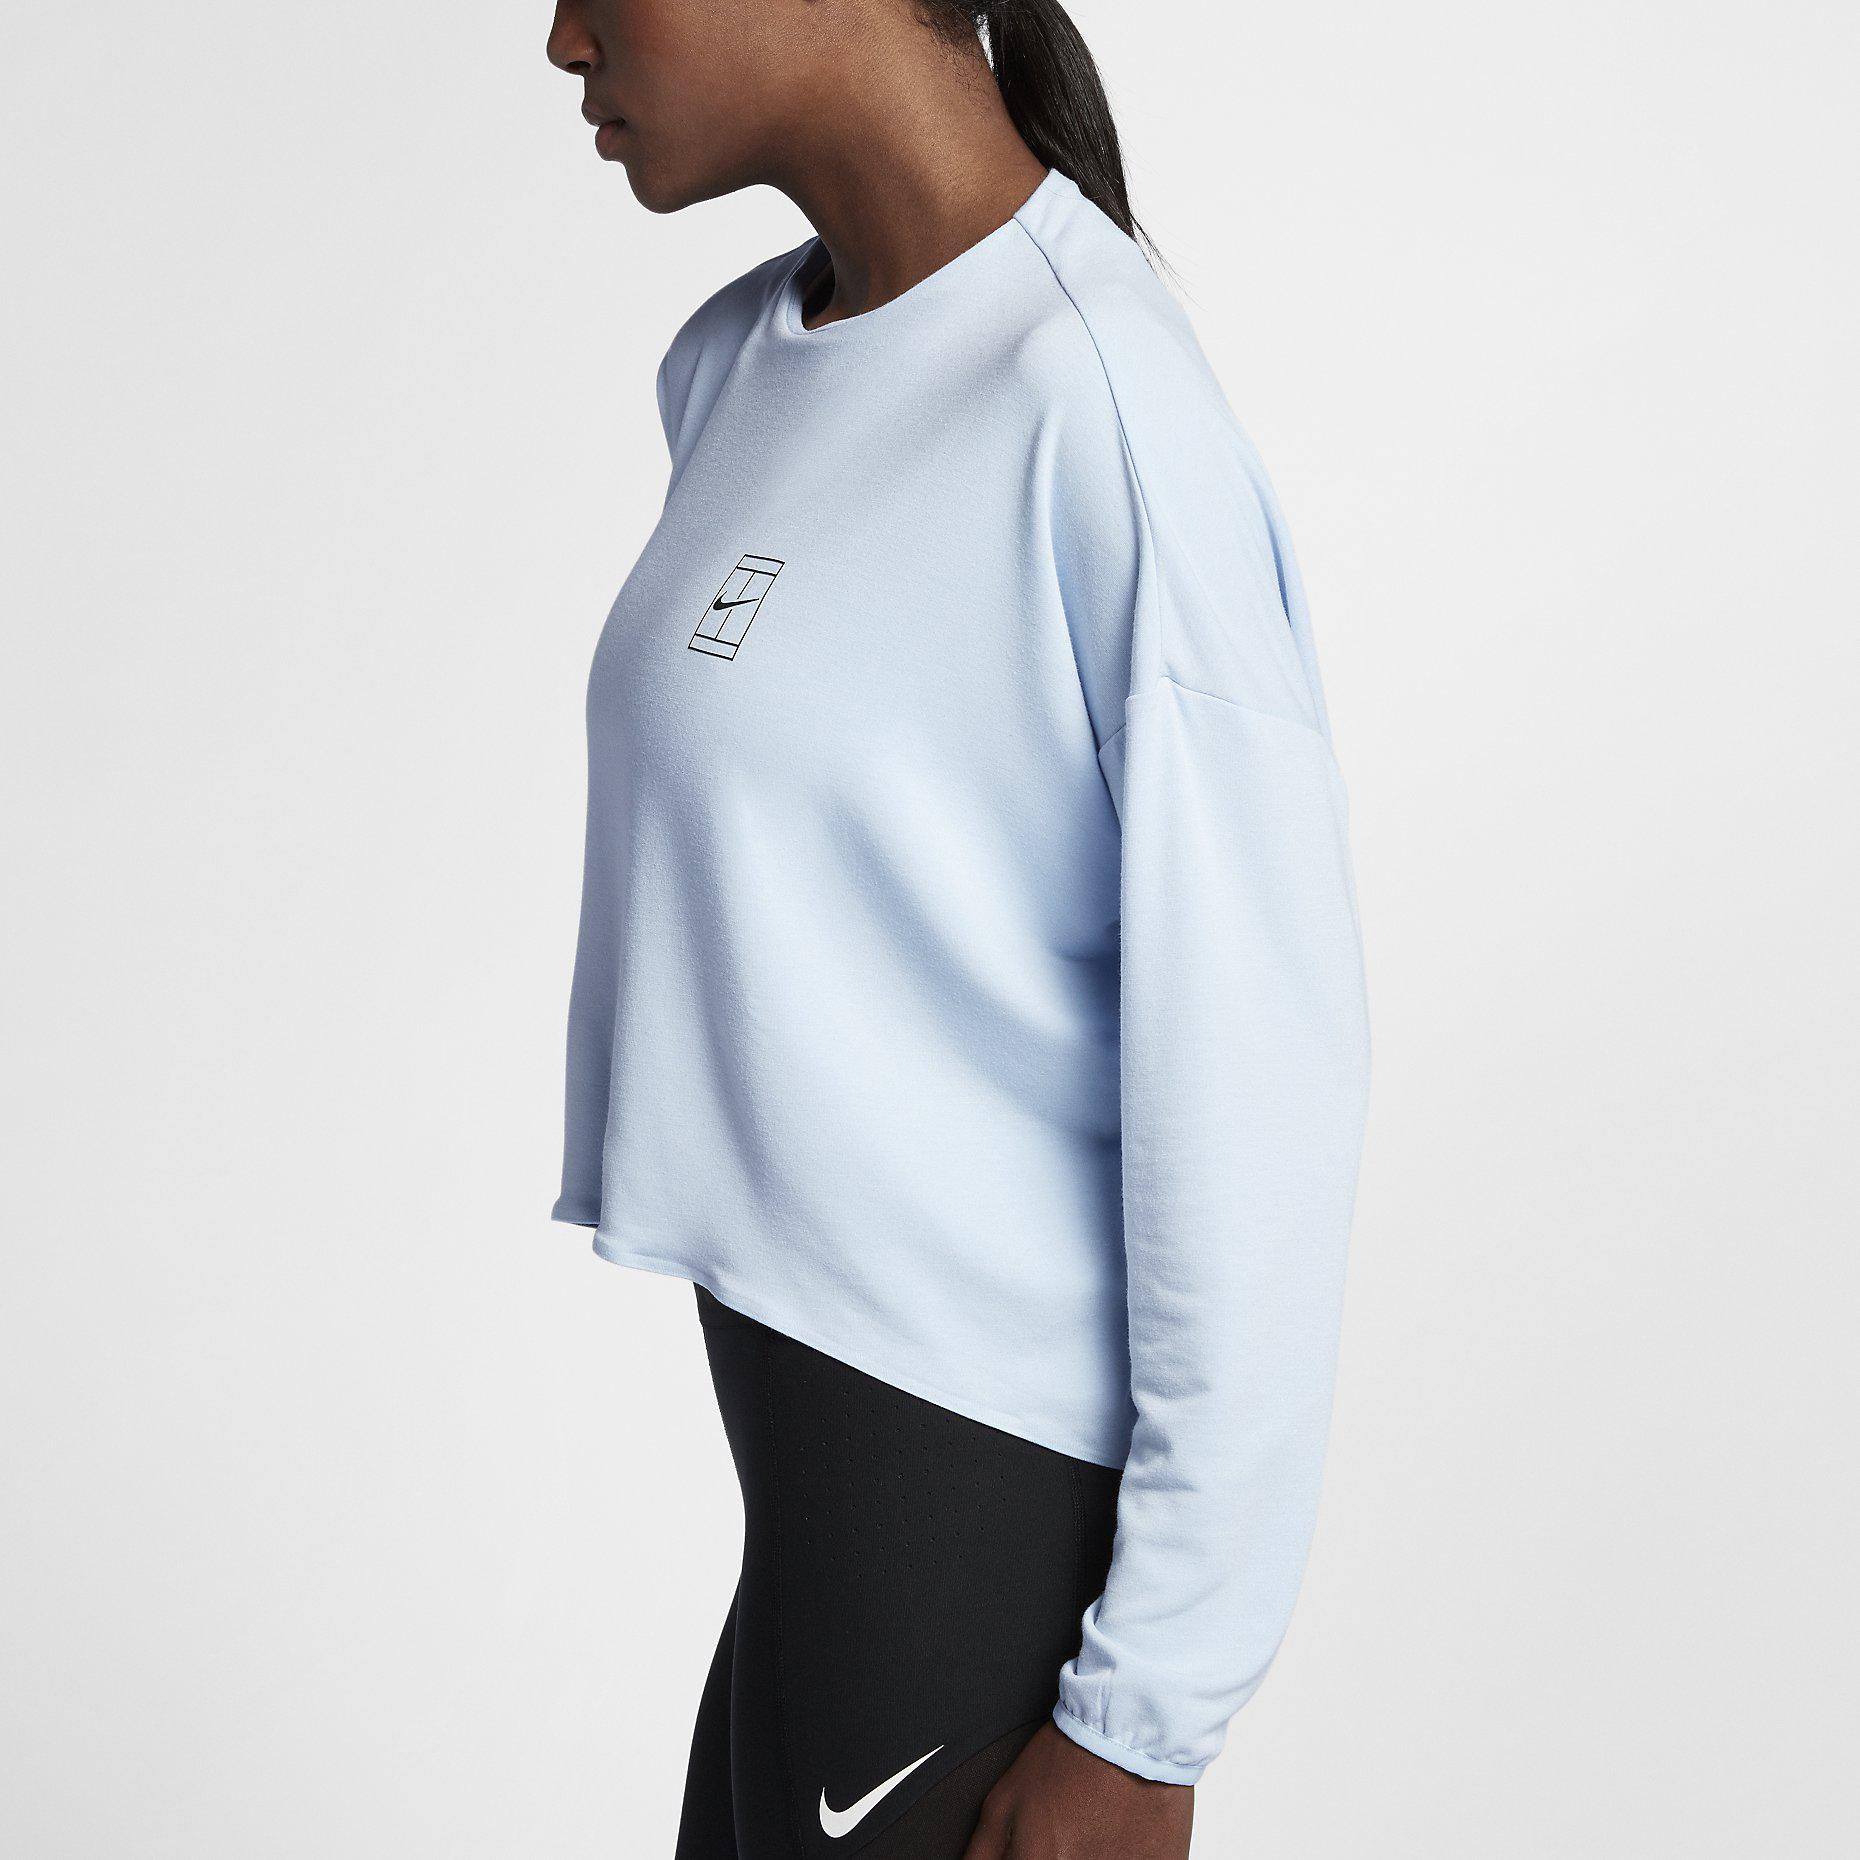 Nike Womens Dri-FIT Long Sleeve Tennis Top - Hydrogen Blue ...